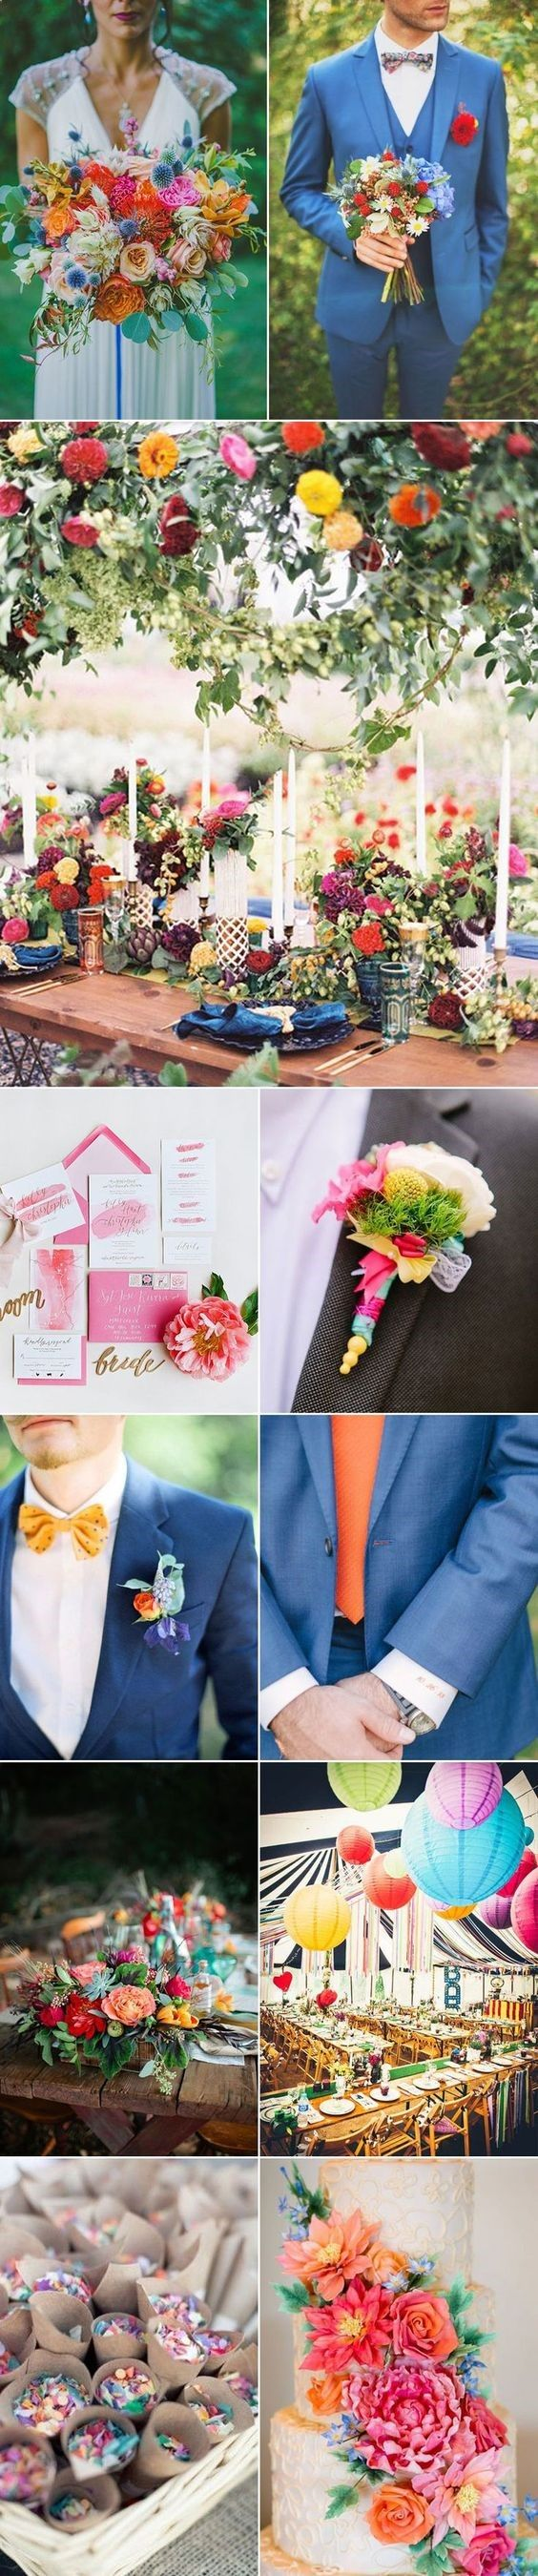 Wedding decorations with flowers november 2018 Unique Wedding Ideas  For The Unconventional Bride u More